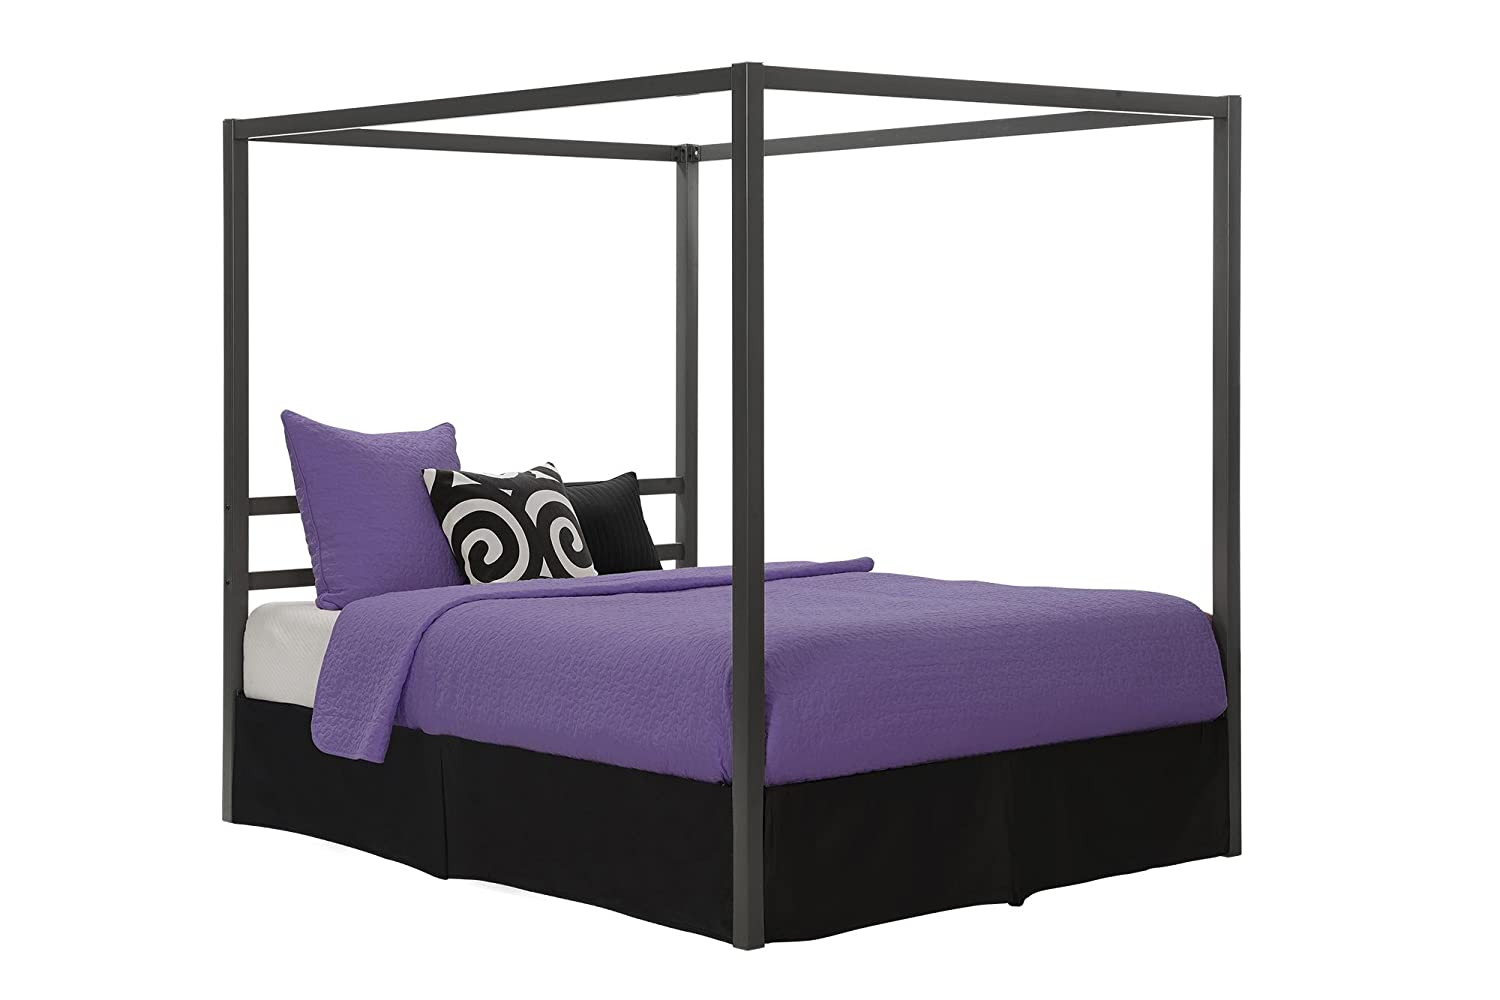 Modern Four Poster Bed Canopy Queen Size Furniture Bedroom ...